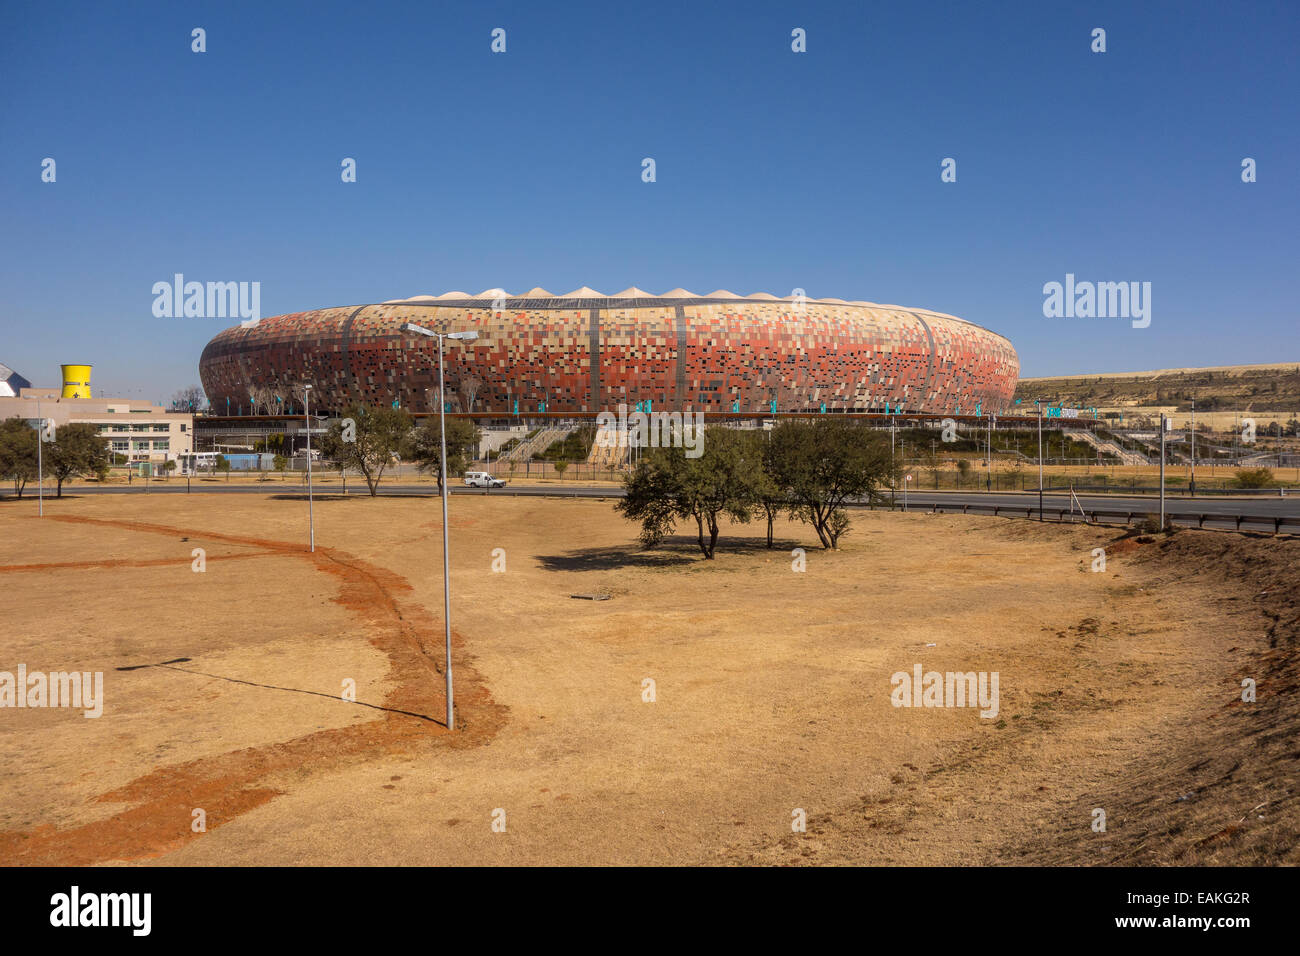 SOWETO, JOHANNESBURG, SOUTH AFRICA - FNB Stadium, aka Soccer City, a calabash-shaped football arena. - Stock Image